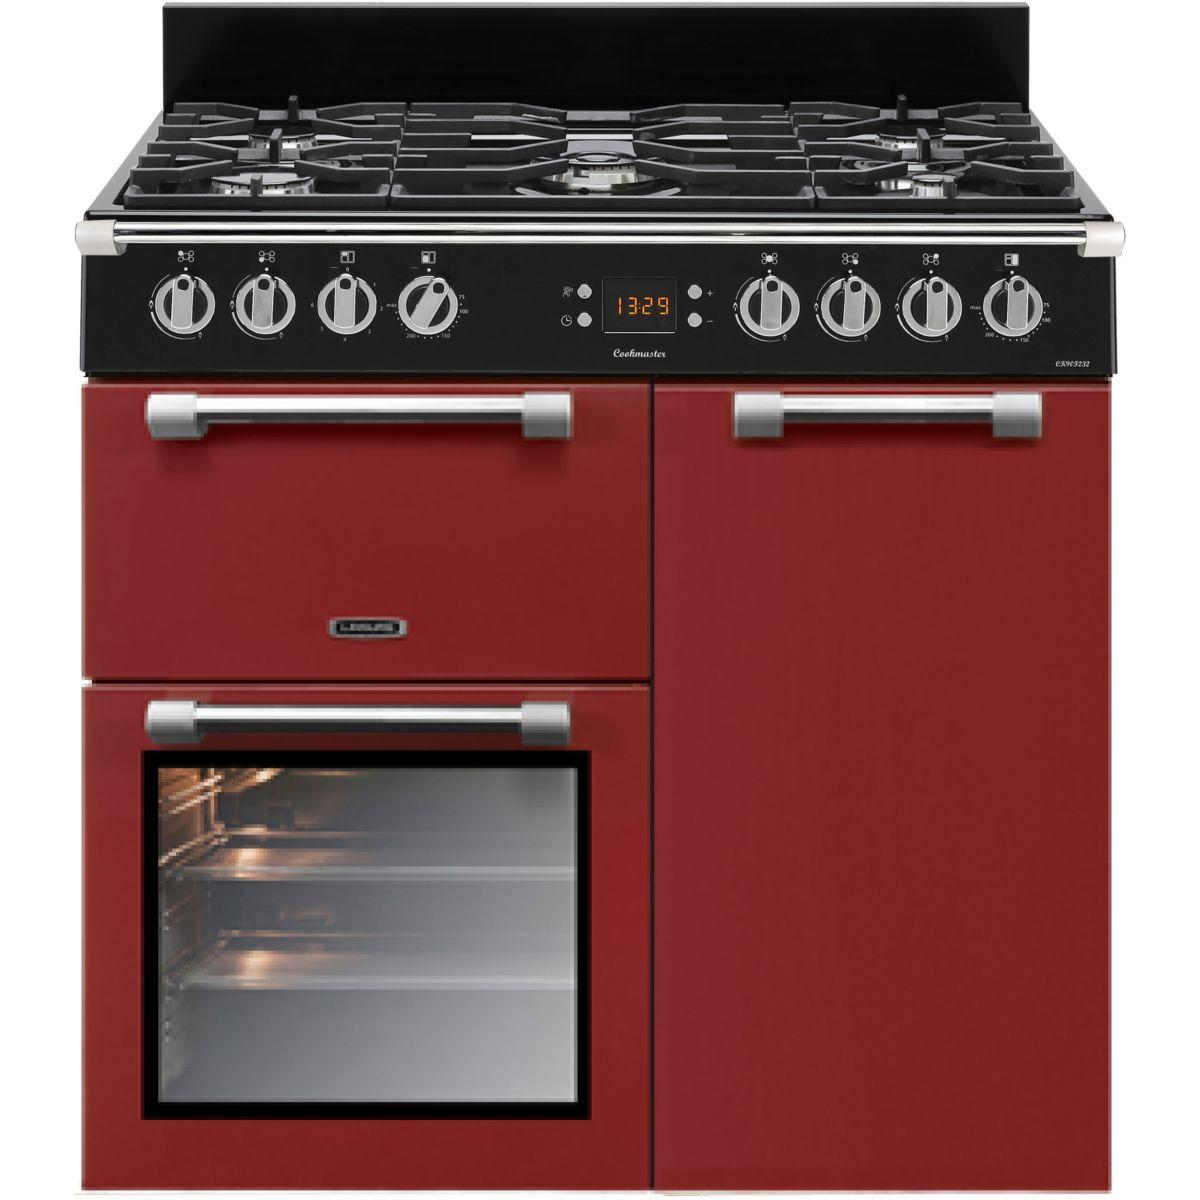 Piano de cuisson mixte leisure ck90f324r (photo)